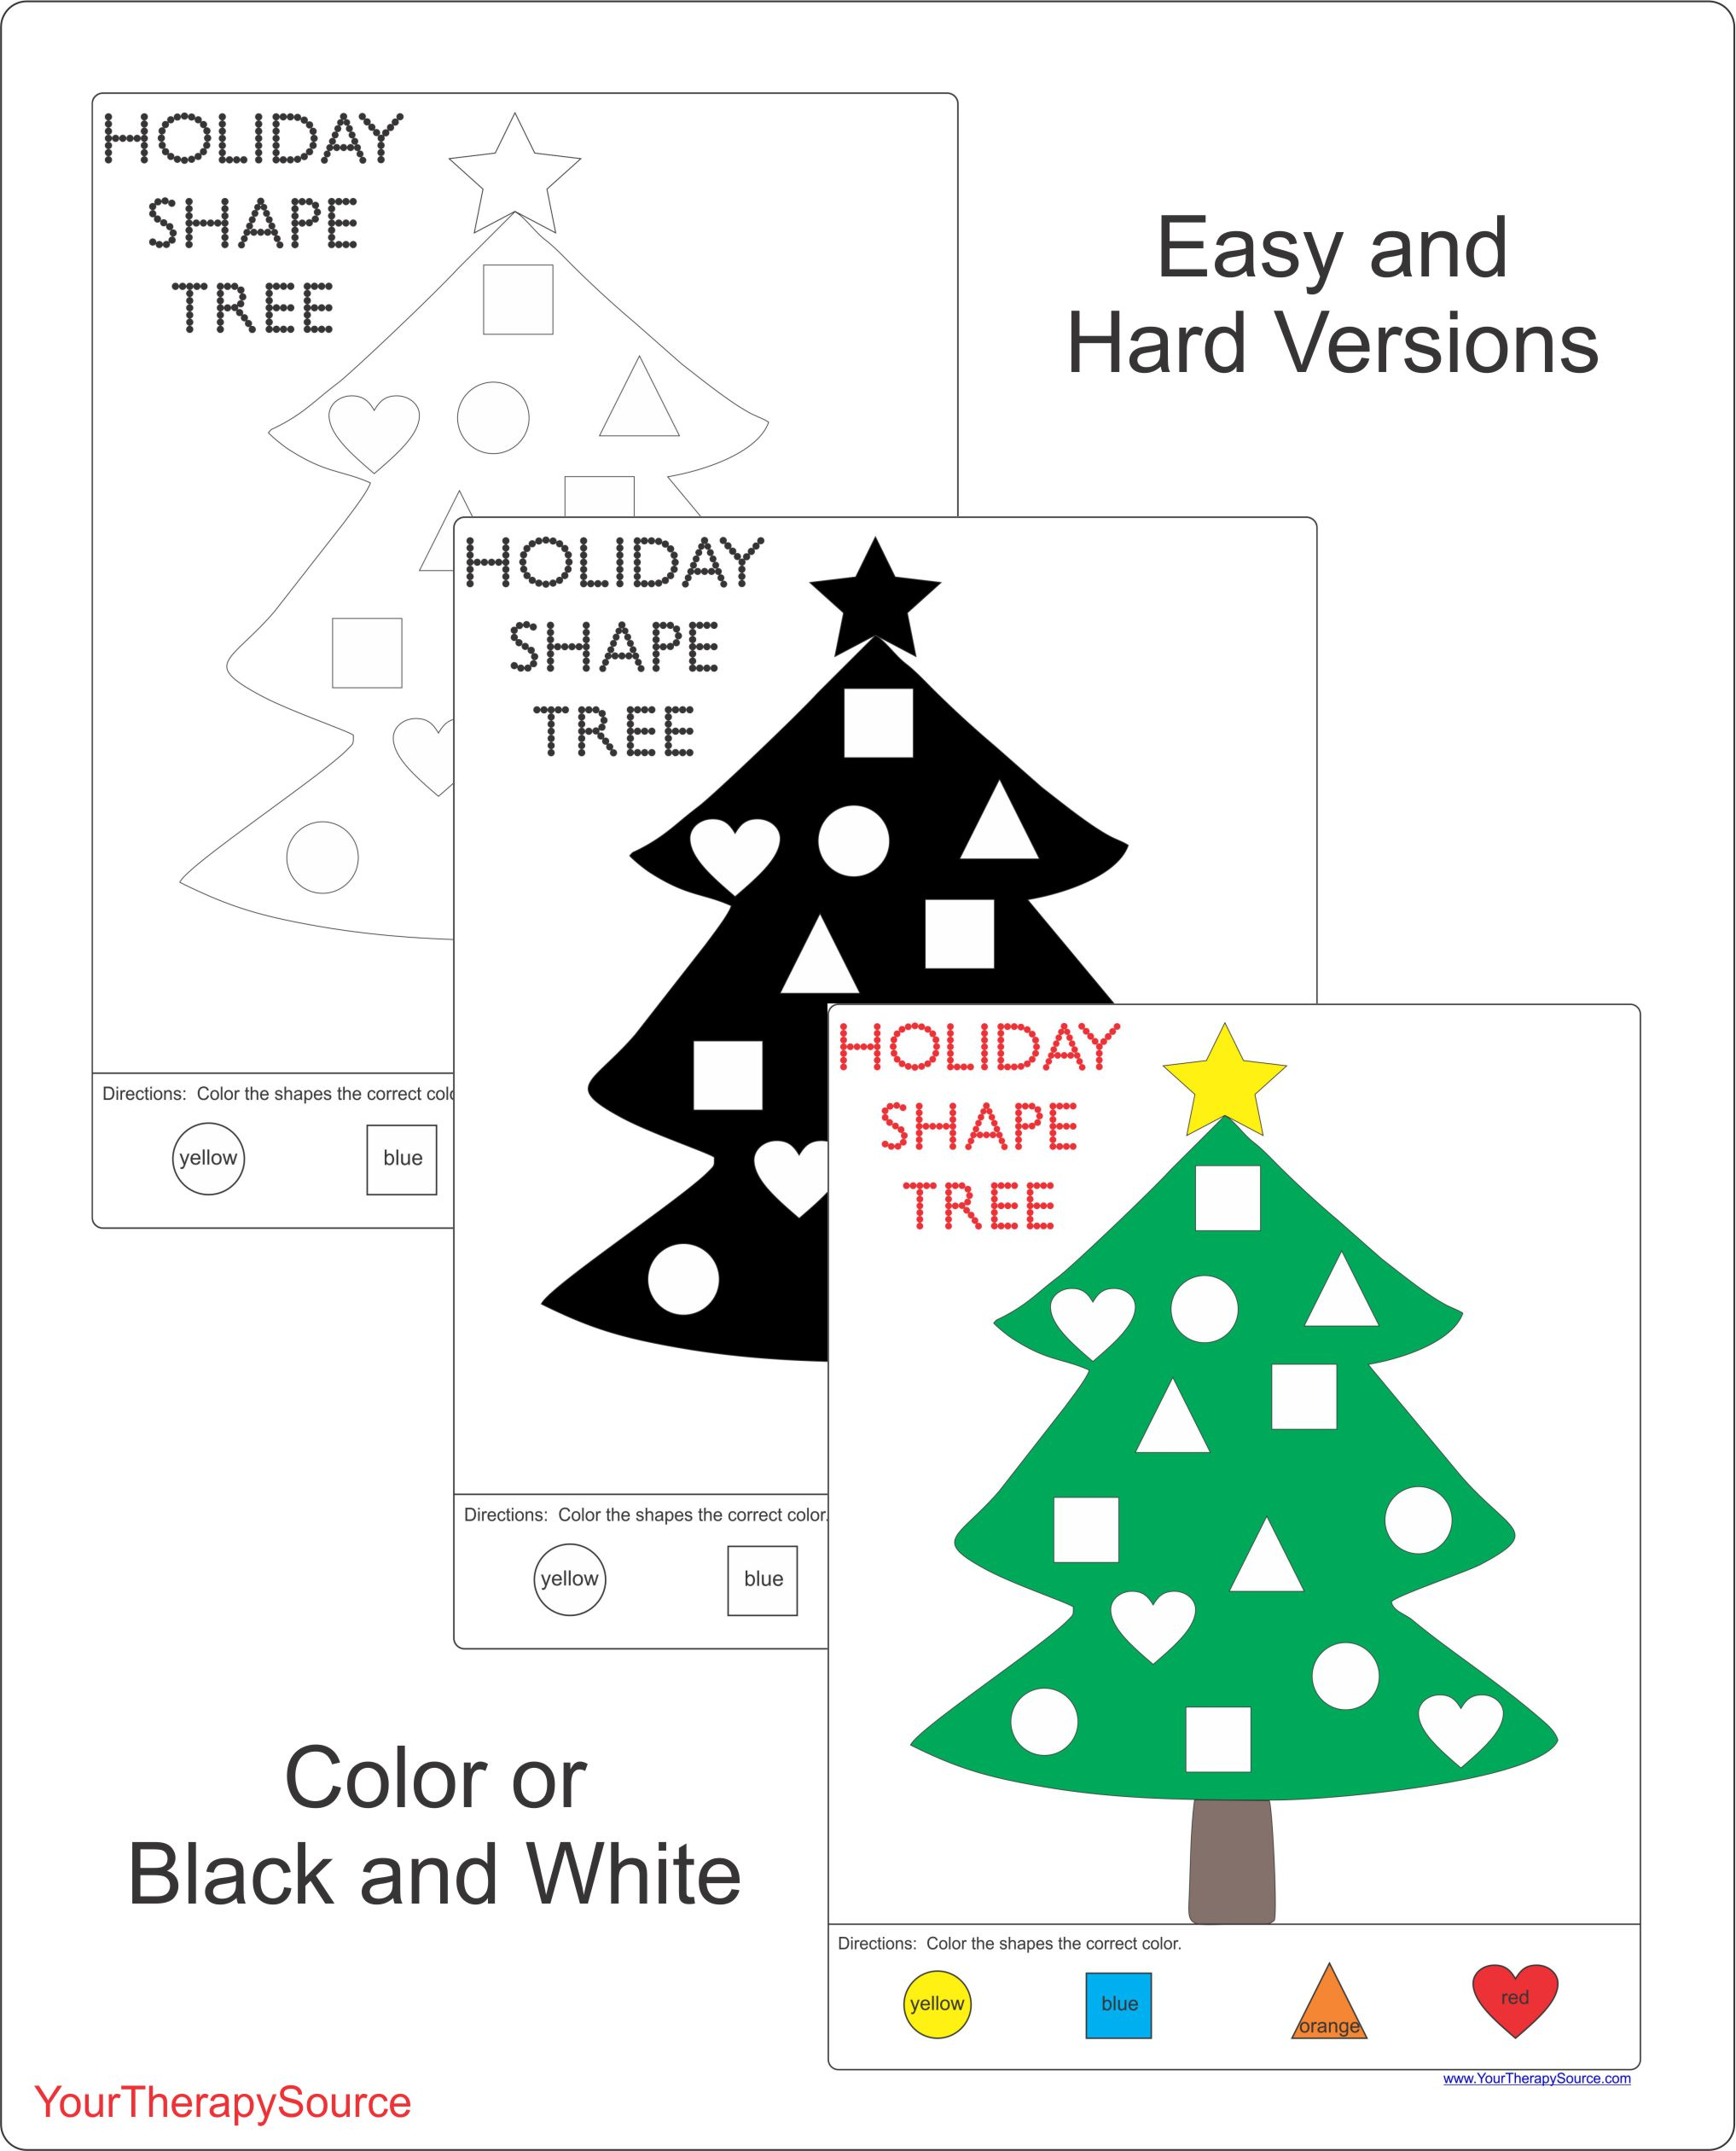 Holiday Shape Tree